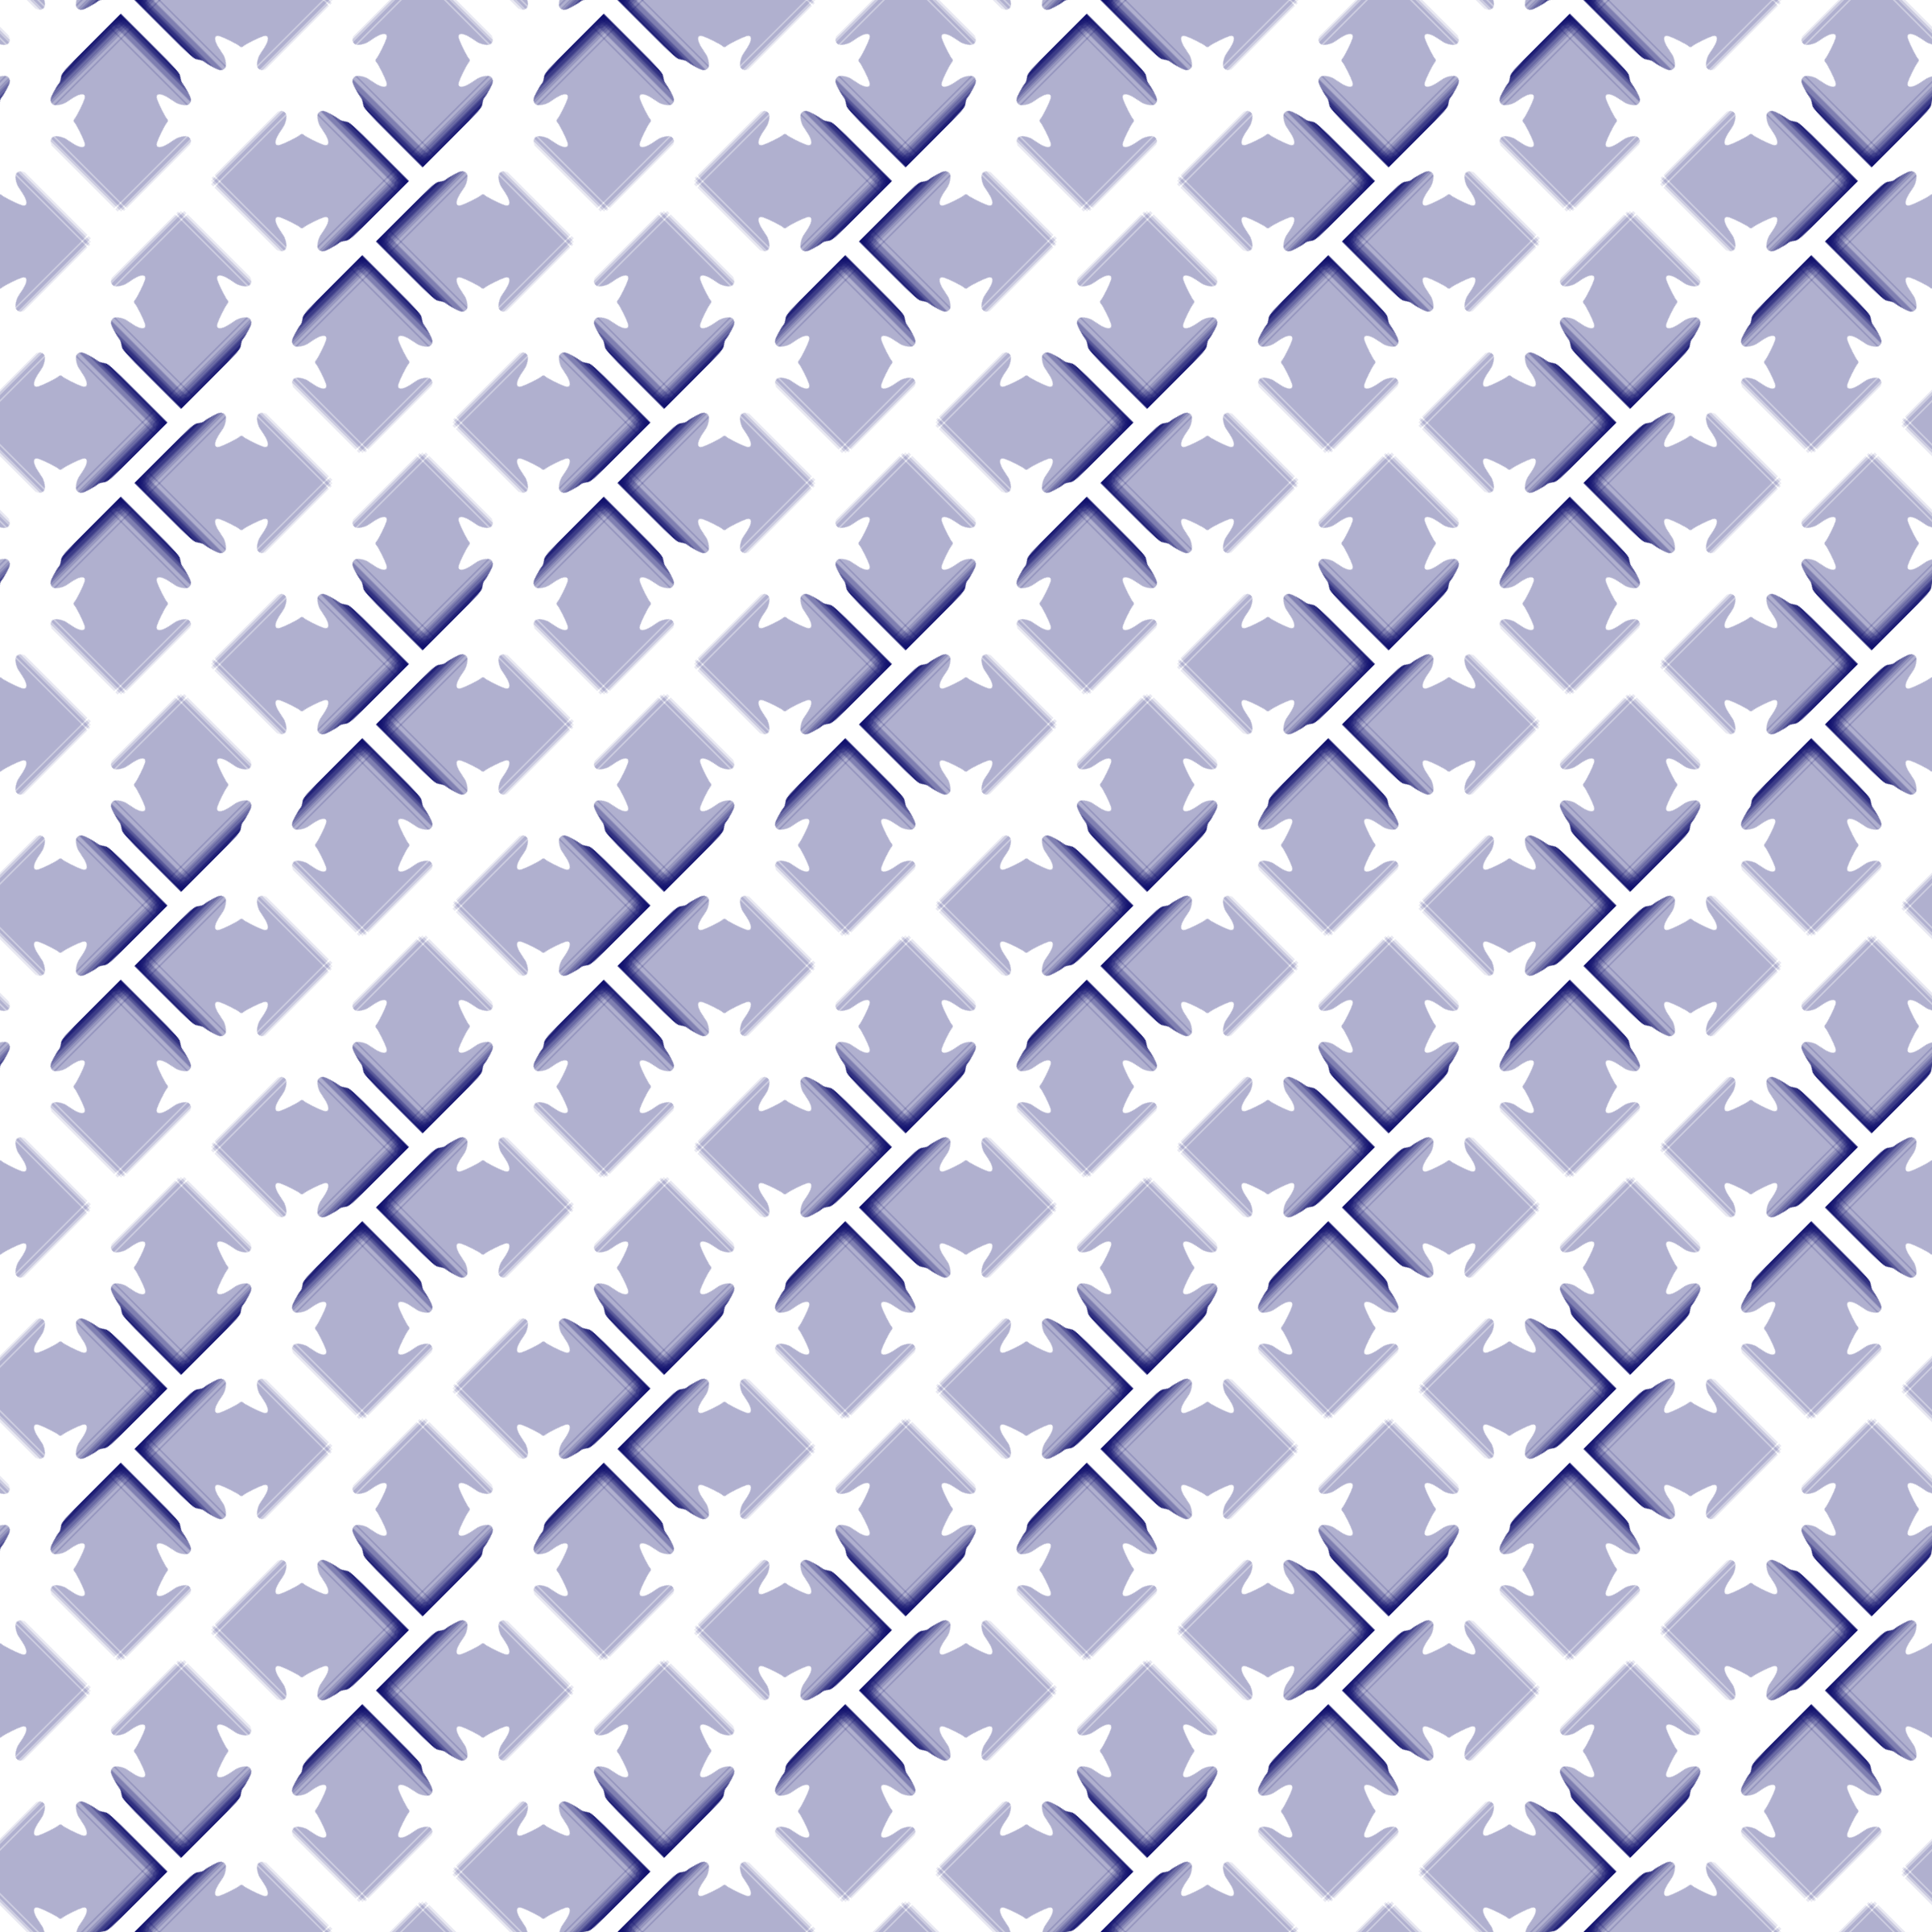 Background pattern 179 colour variant 2 by Firkin